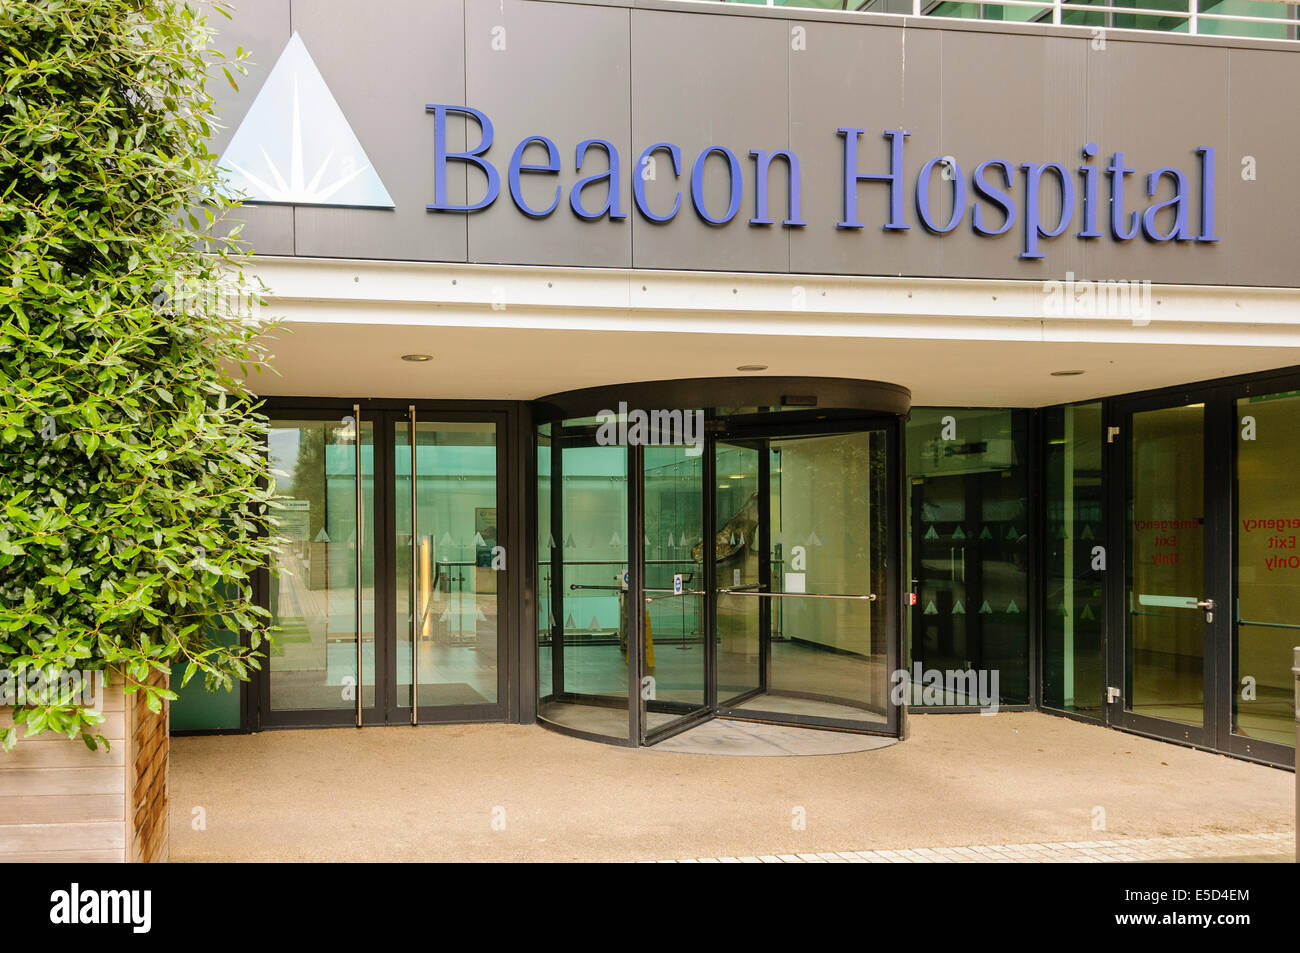 The Beacon Hospital, Dublin, a private hospital which provides world-class acute medical care. - Stock Image